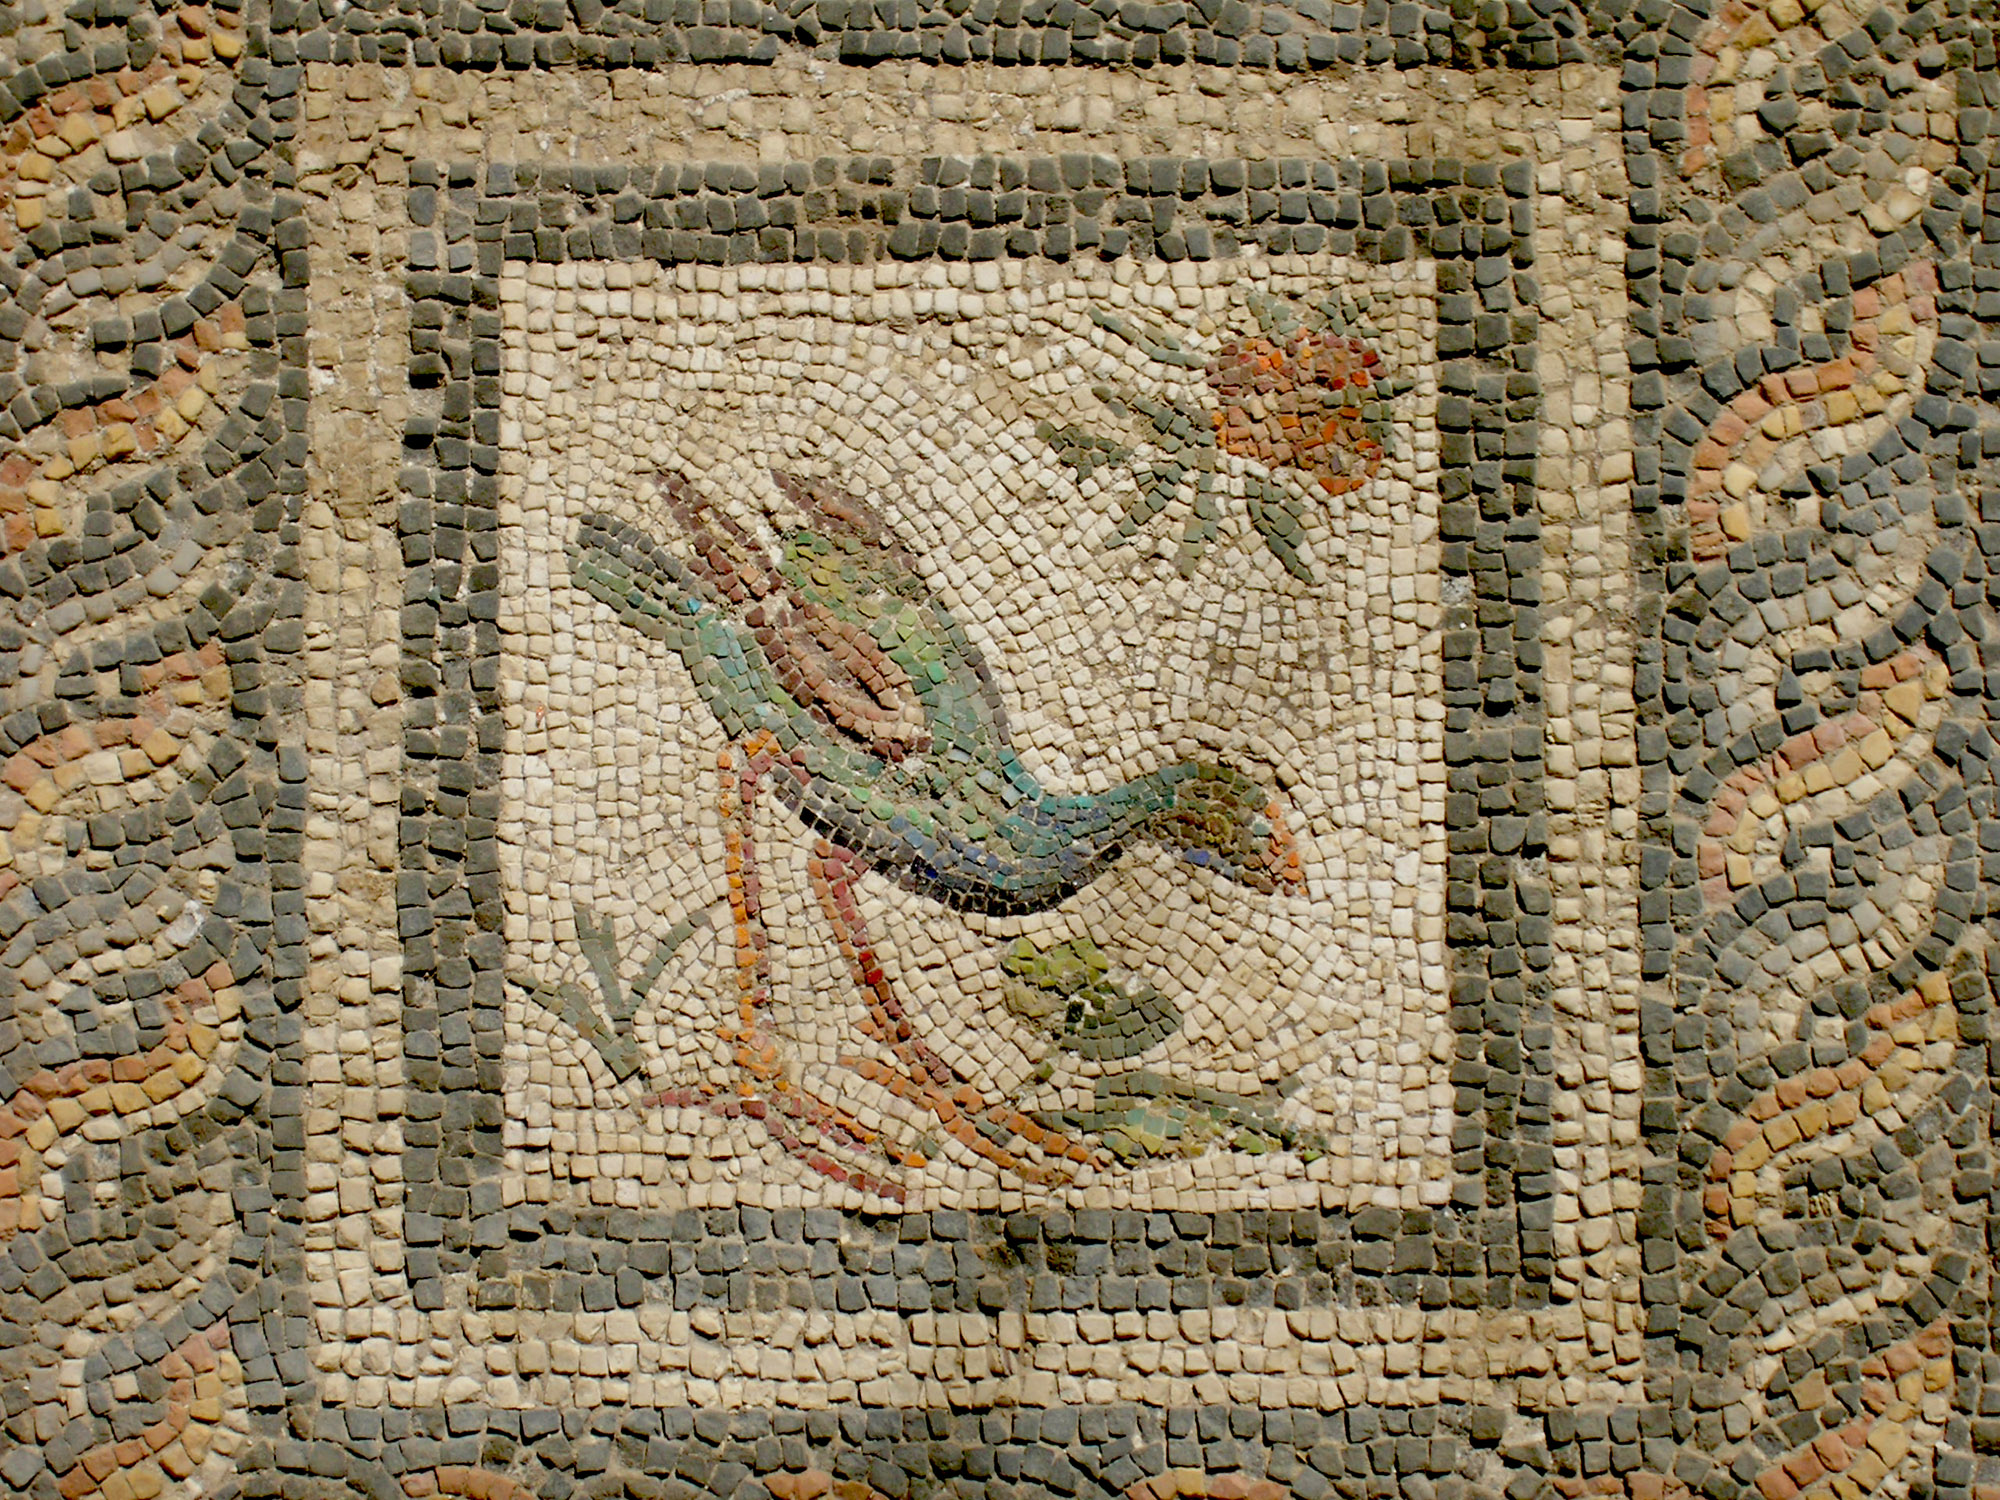 Mosaic, Roman period, Alexandria, Egypt, courtesy to C. Redmount and J. Li